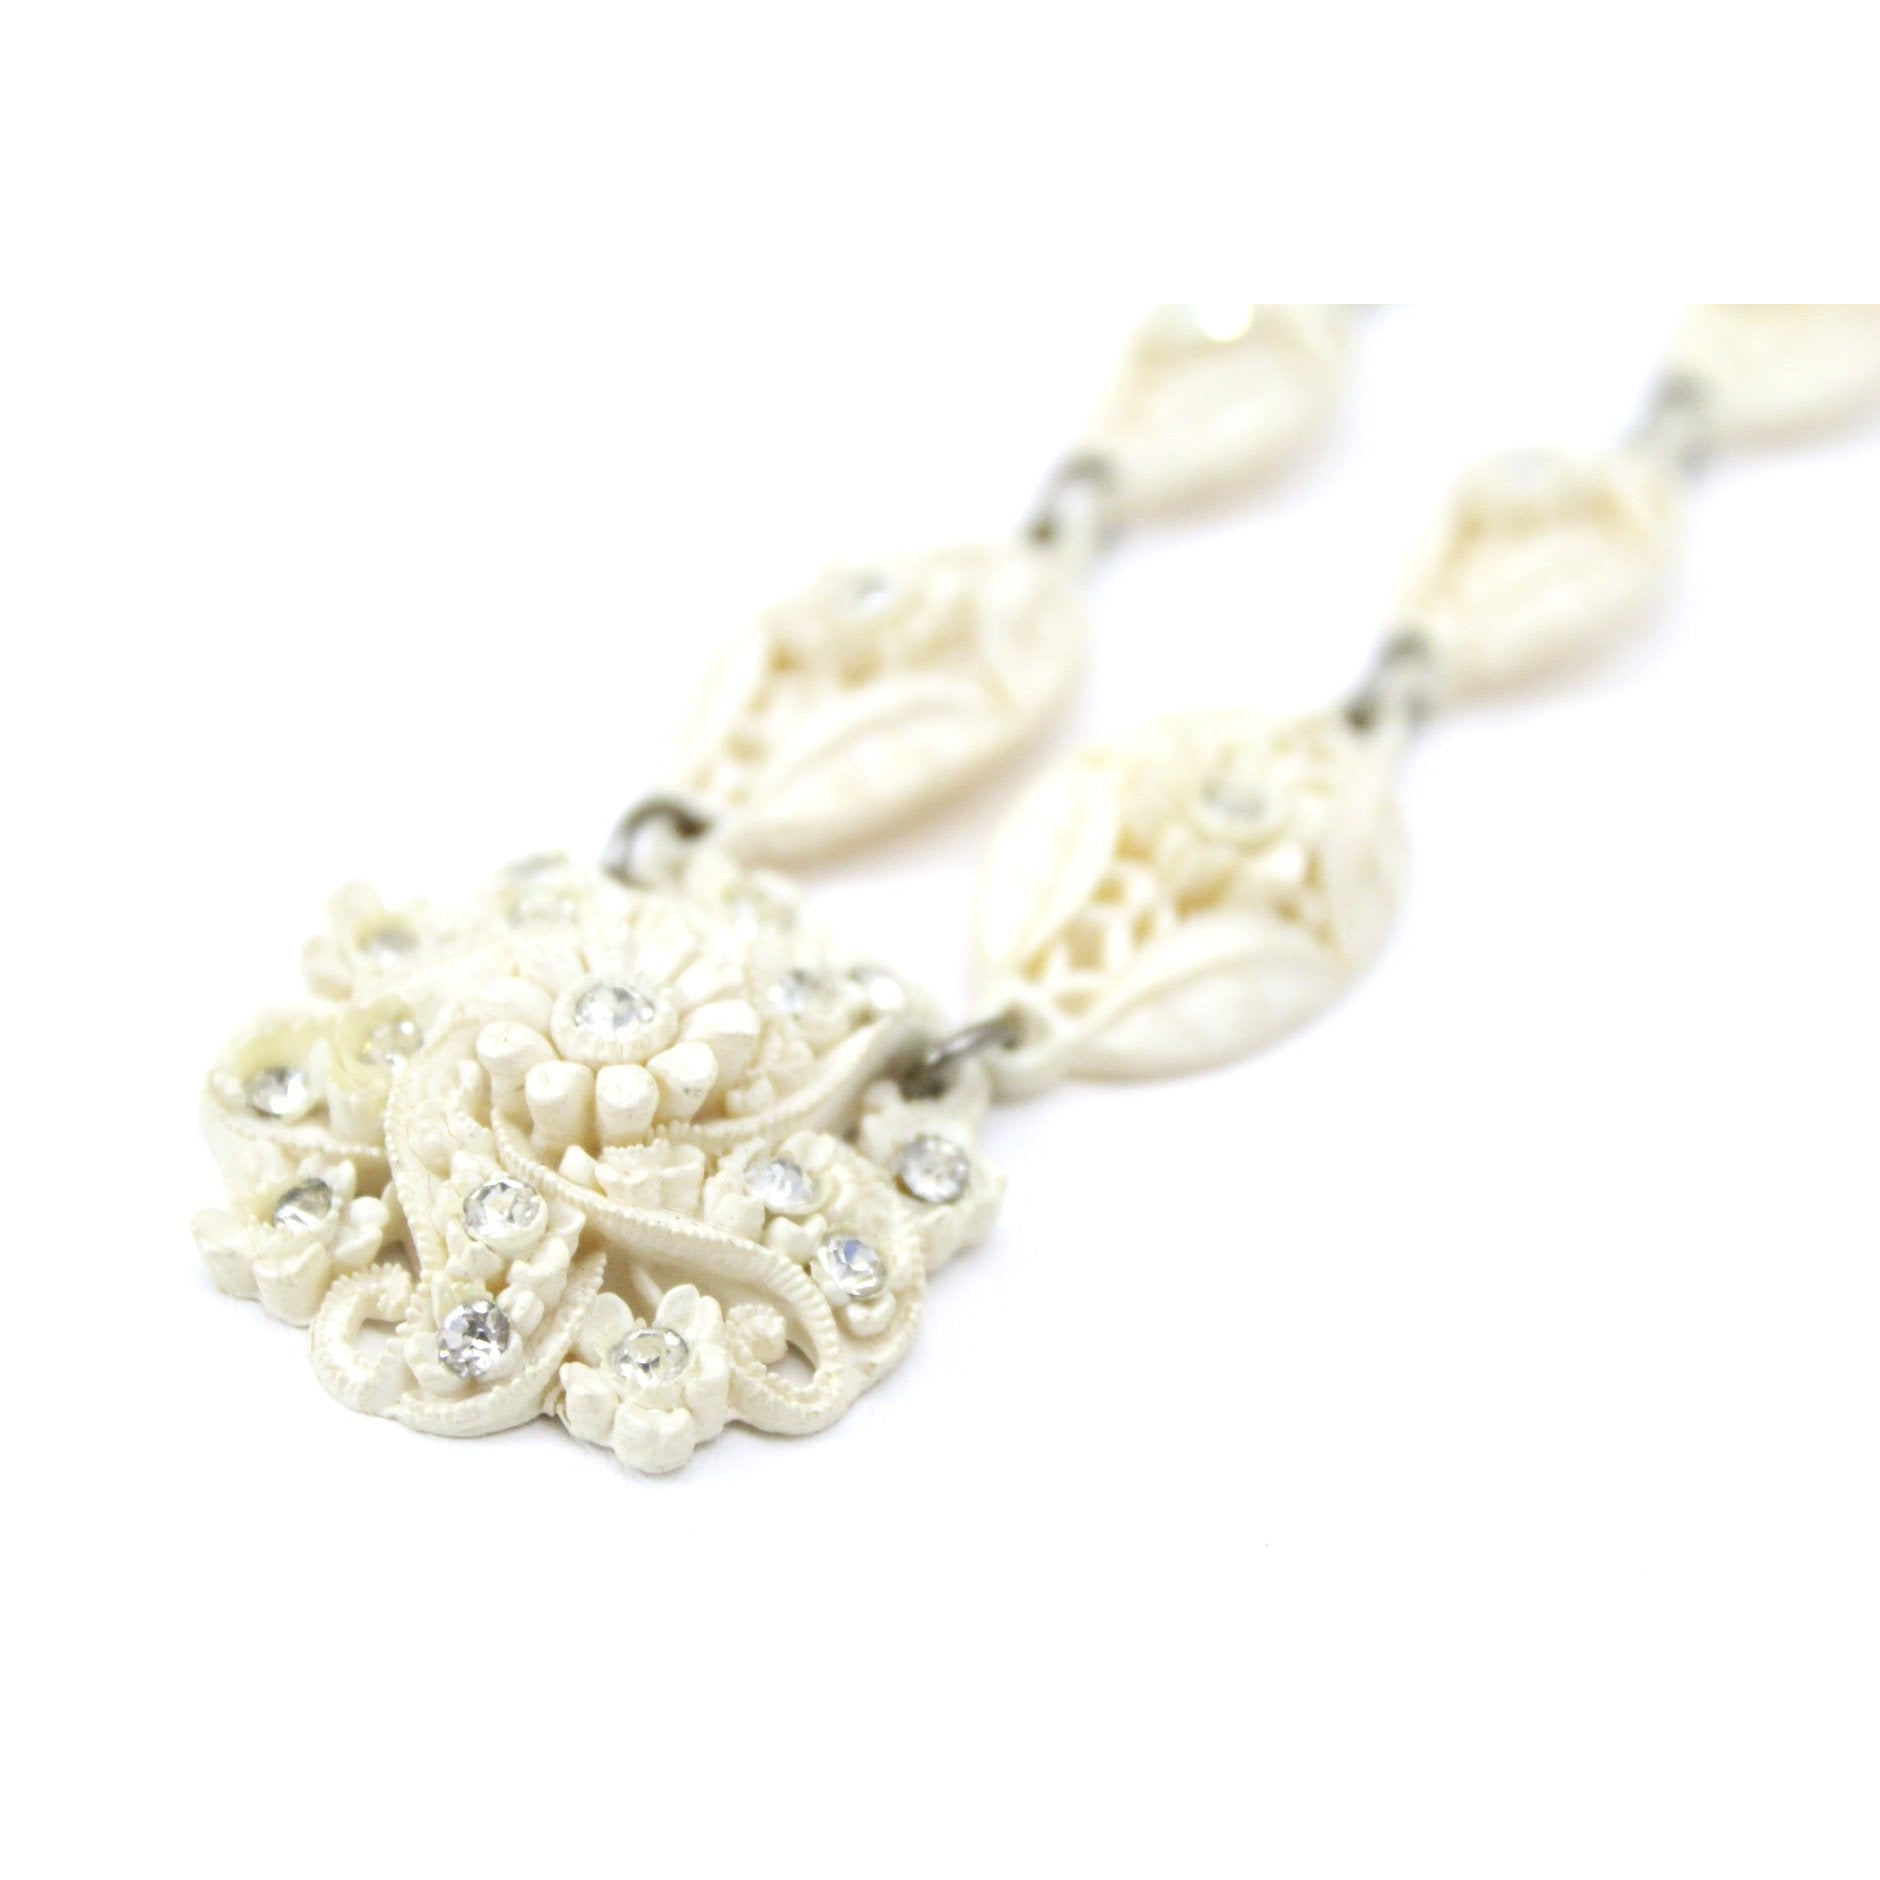 Vintage Carved Pierced Ivory Celluloid Necklace 1930s Rhinestones Flowers Wedding